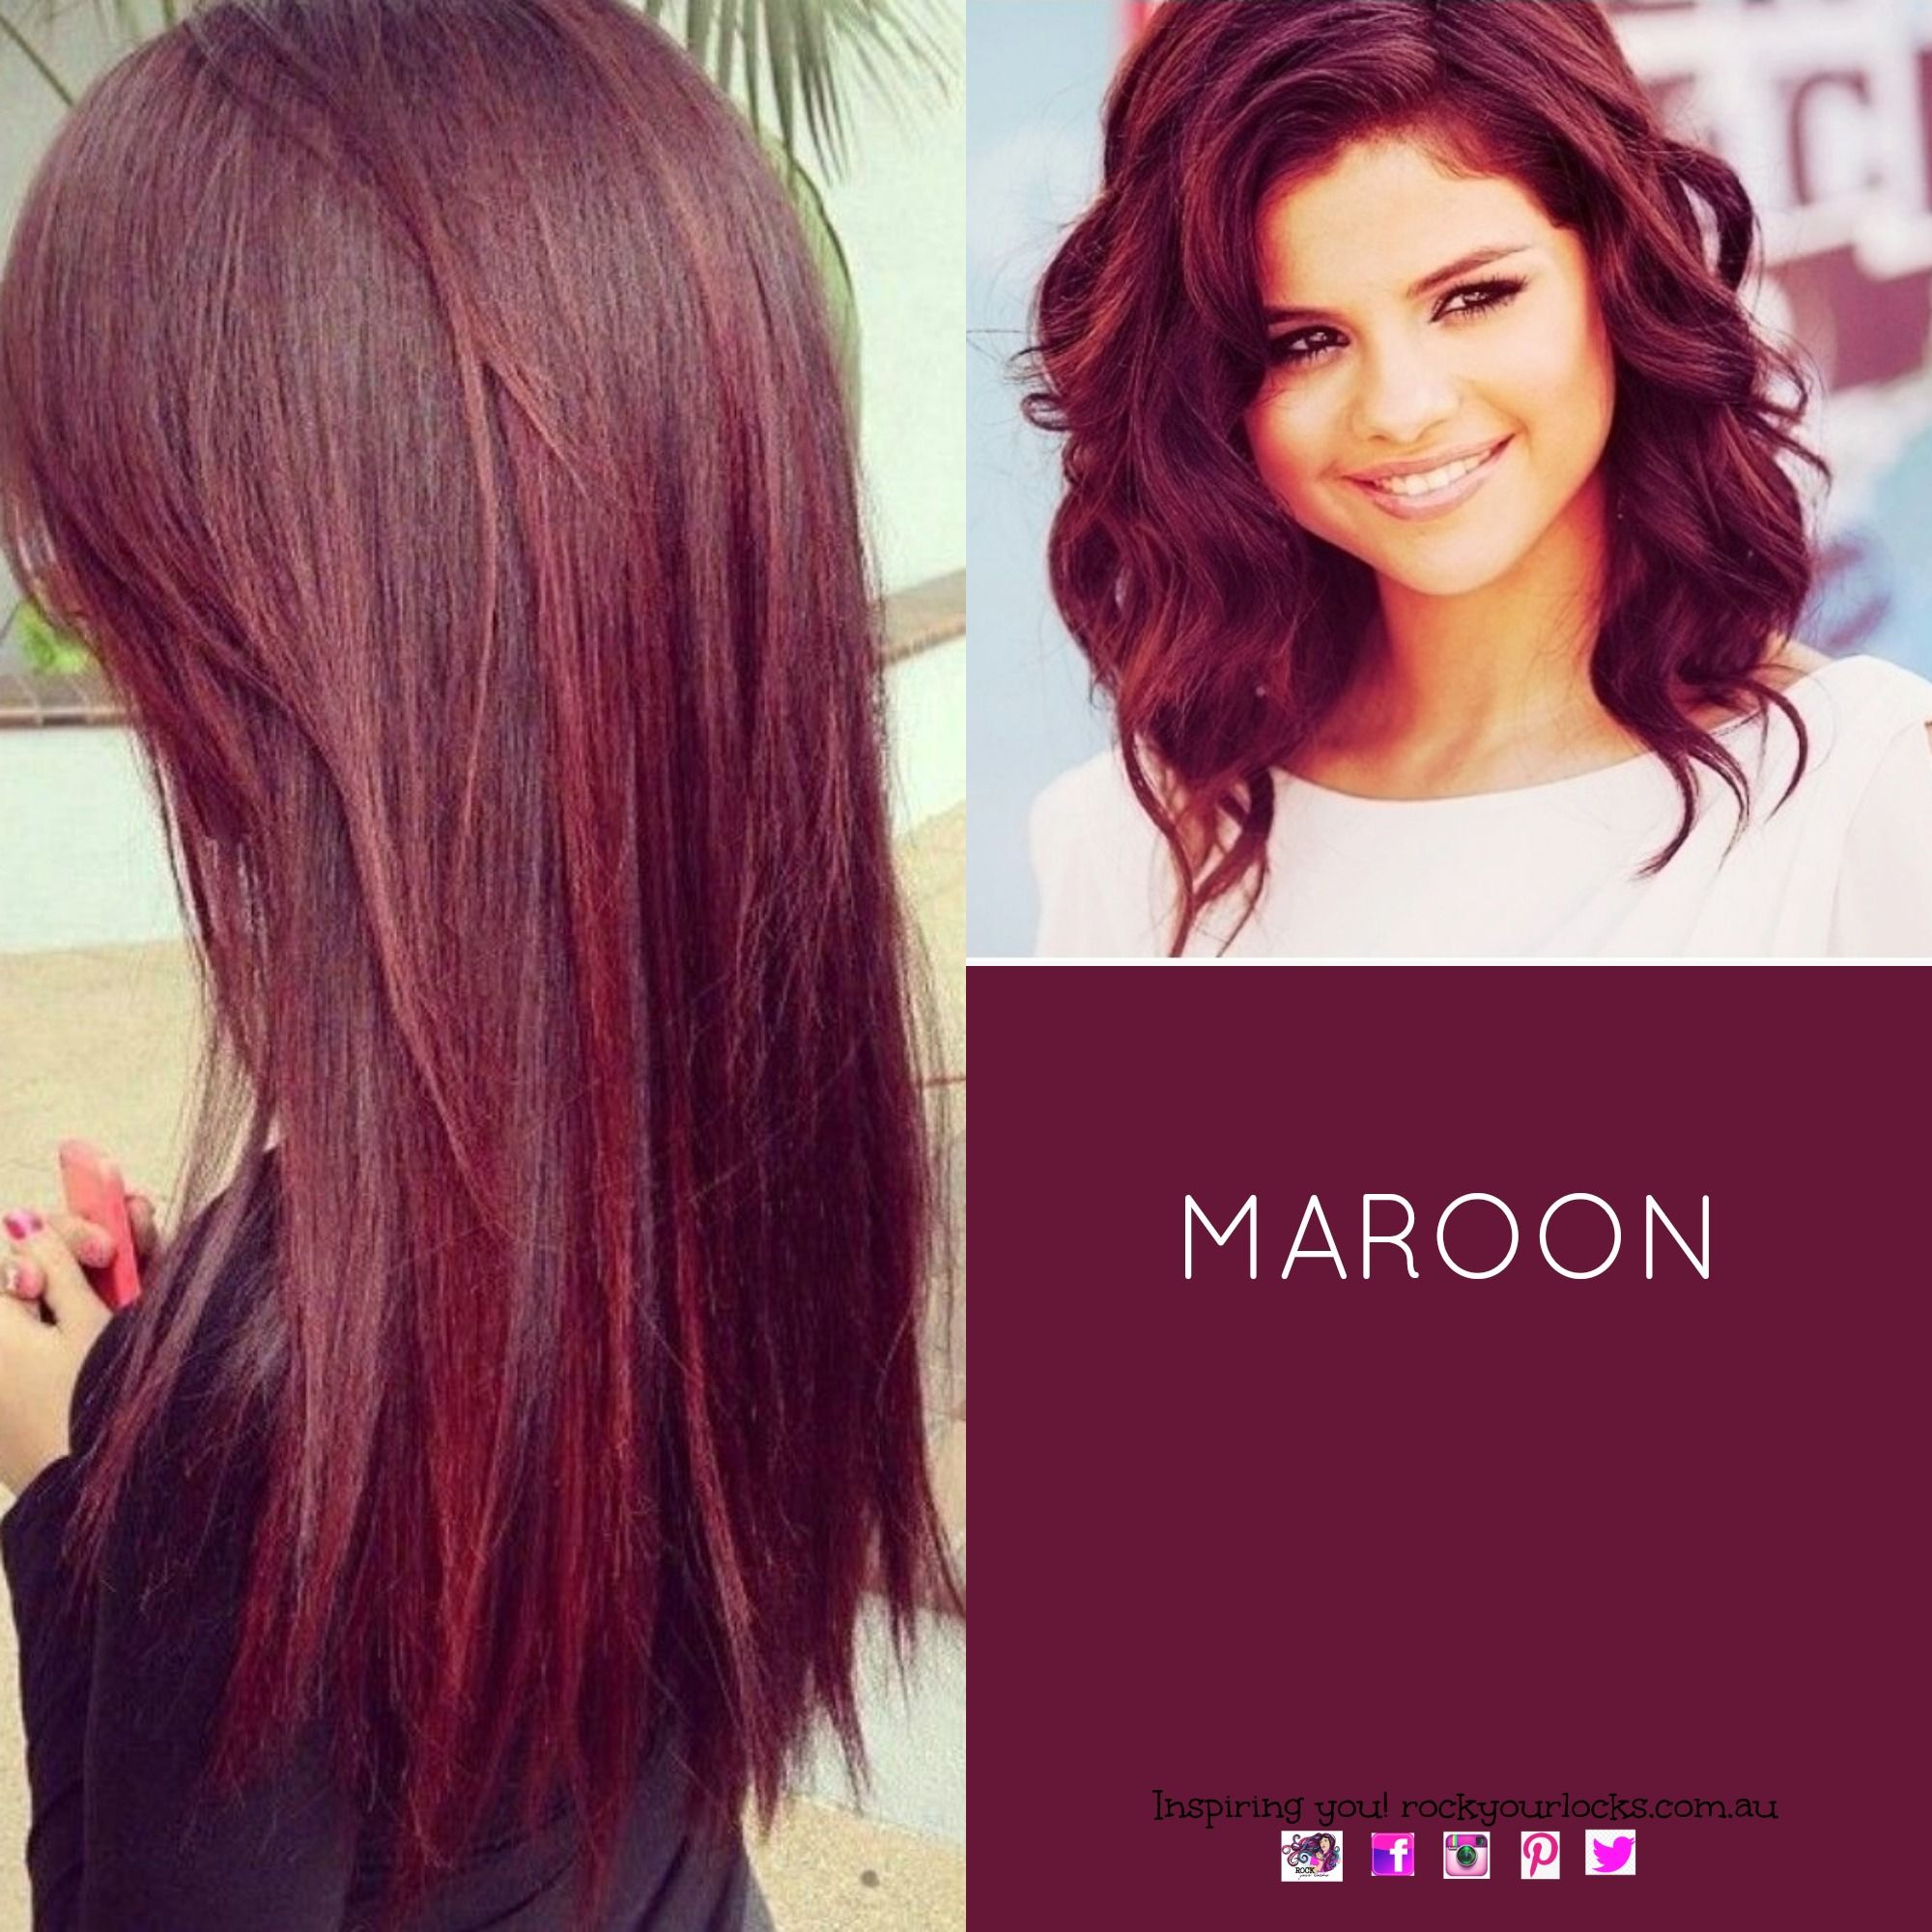 Hair colour maroon haircolour redhair wanna try this color hair colour maroon haircolour redhair wanna try this color my hair urmus Image collections